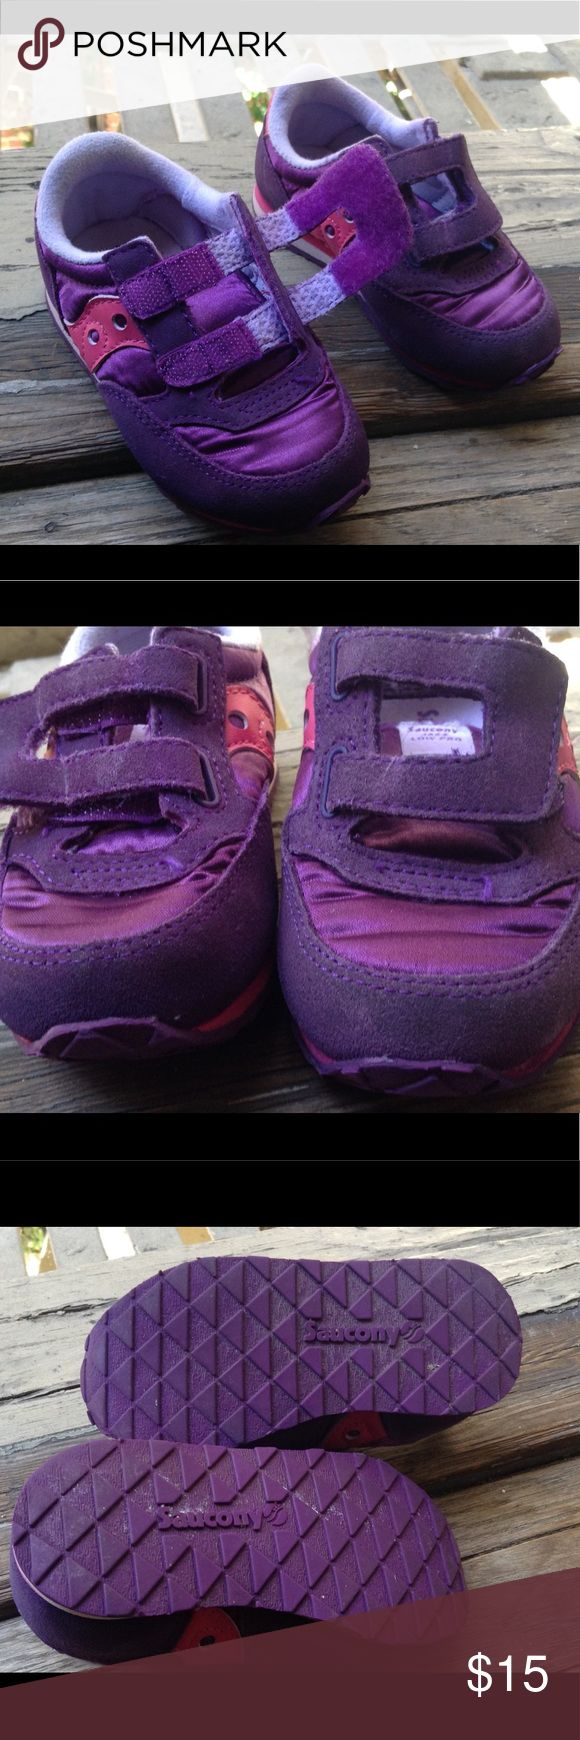 "Saucony Toddler Jazz Lo Pro Velcro Sneakers Purple Suede & Satin Inserts with Pink Trim. Velcro Close. Size 6 Measures: 6 1/2"" Long x 2 1/2"" Wide. Baby Jazz H & L Saucony Shoes Sneakers"